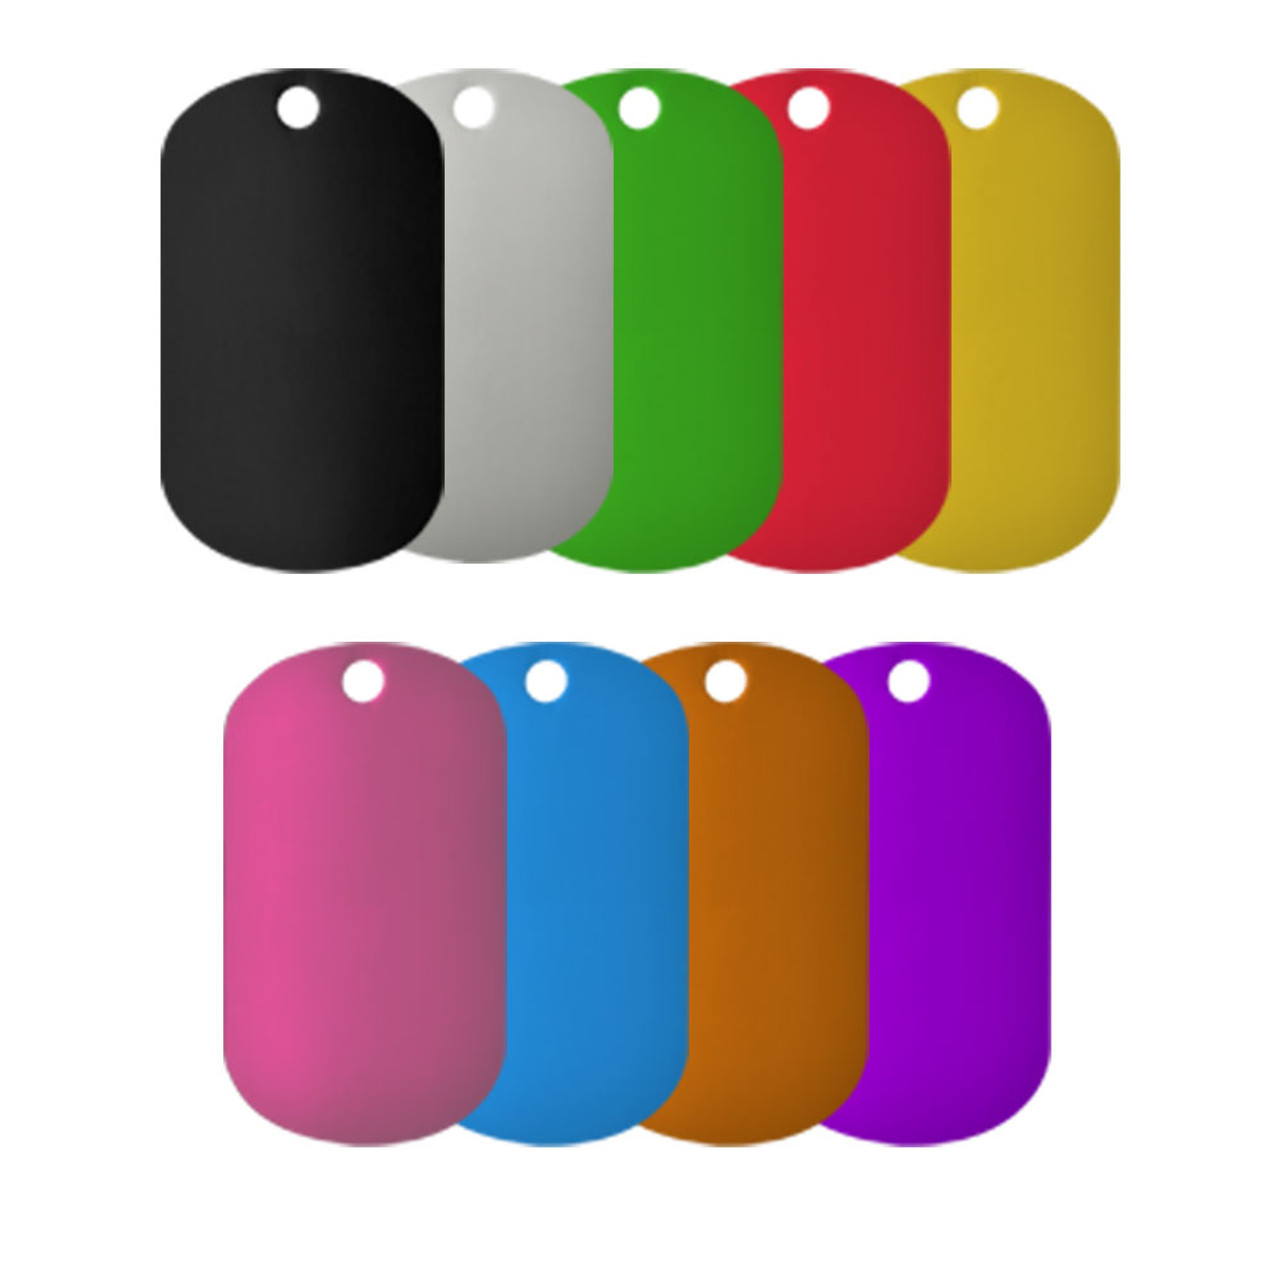 Anodized Aluminum Color Dog Tags (1.5 mm thick) sold in various colors. This image shows all of the colors available to purchase. These specific dog tags are sold as blanks and can be laser engraved.